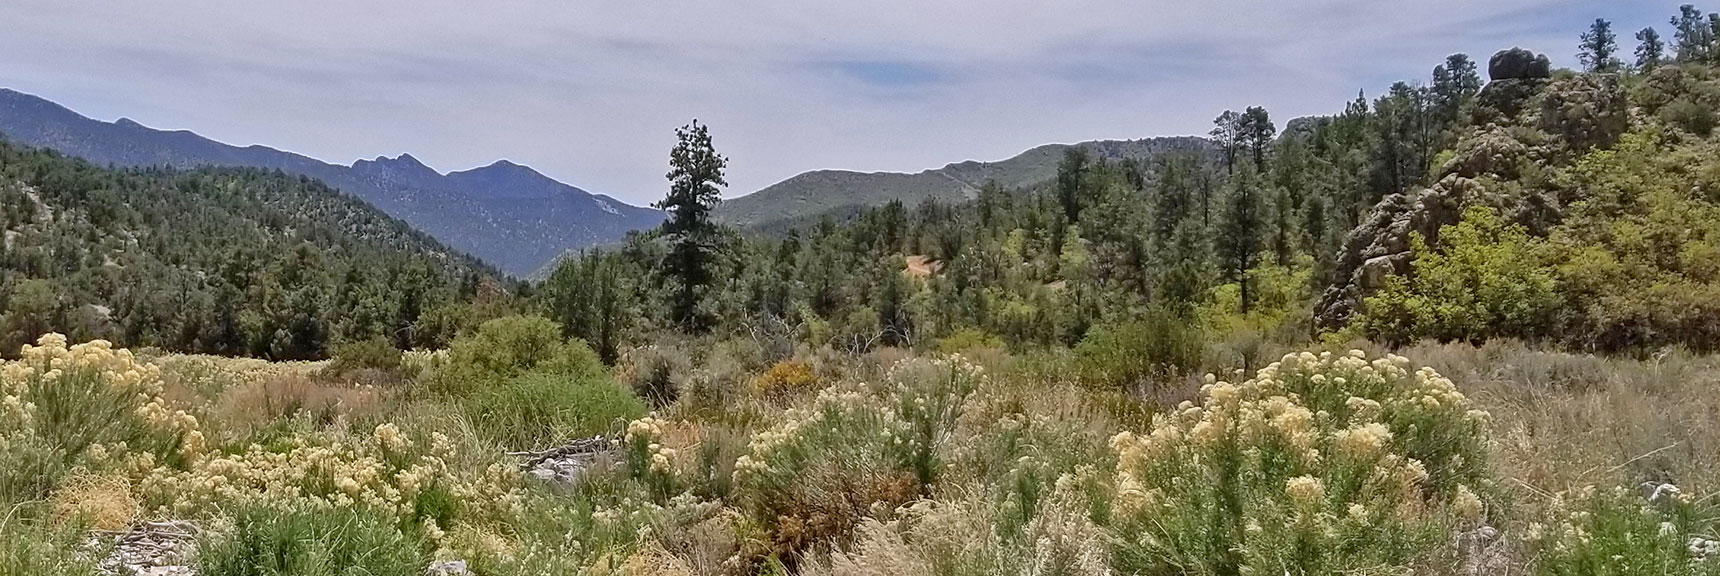 View Down Lovell Canyon, Lovell Canyon Trail, La Madre Mountains Wilderness, Nevada